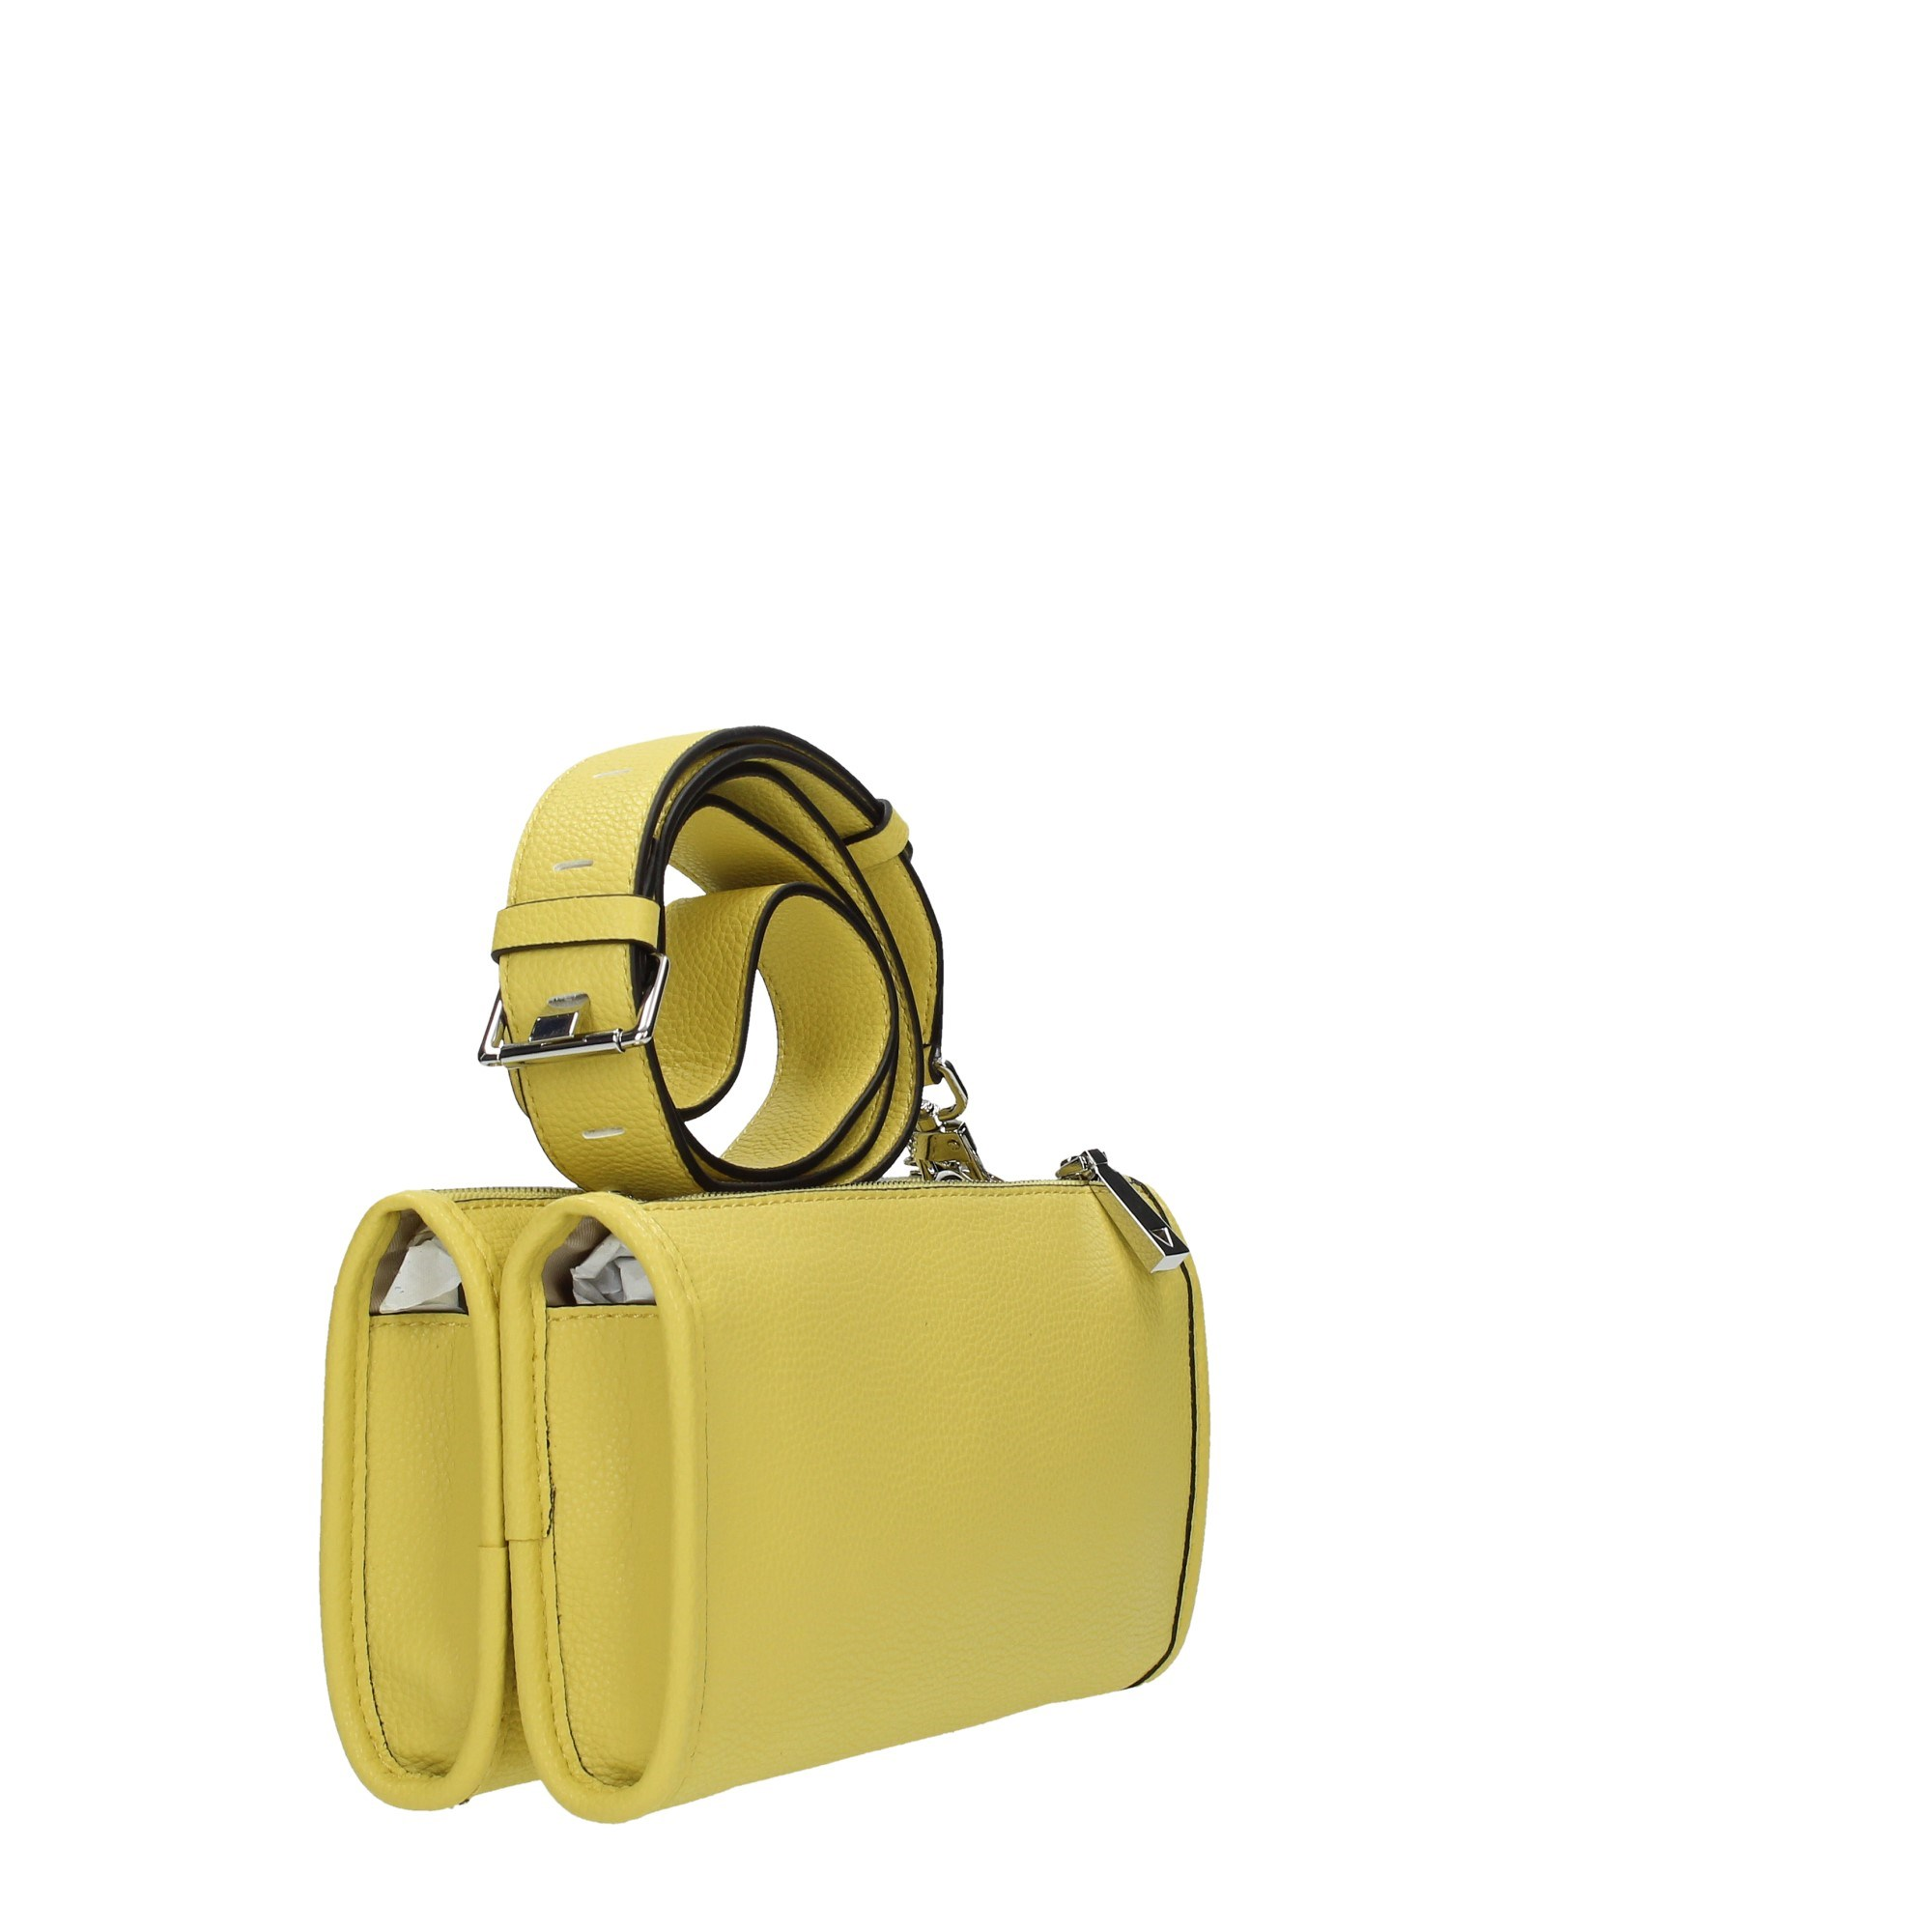 Guess Borse Accessories Women Shoulder Bags Yellow HWVY76/70700